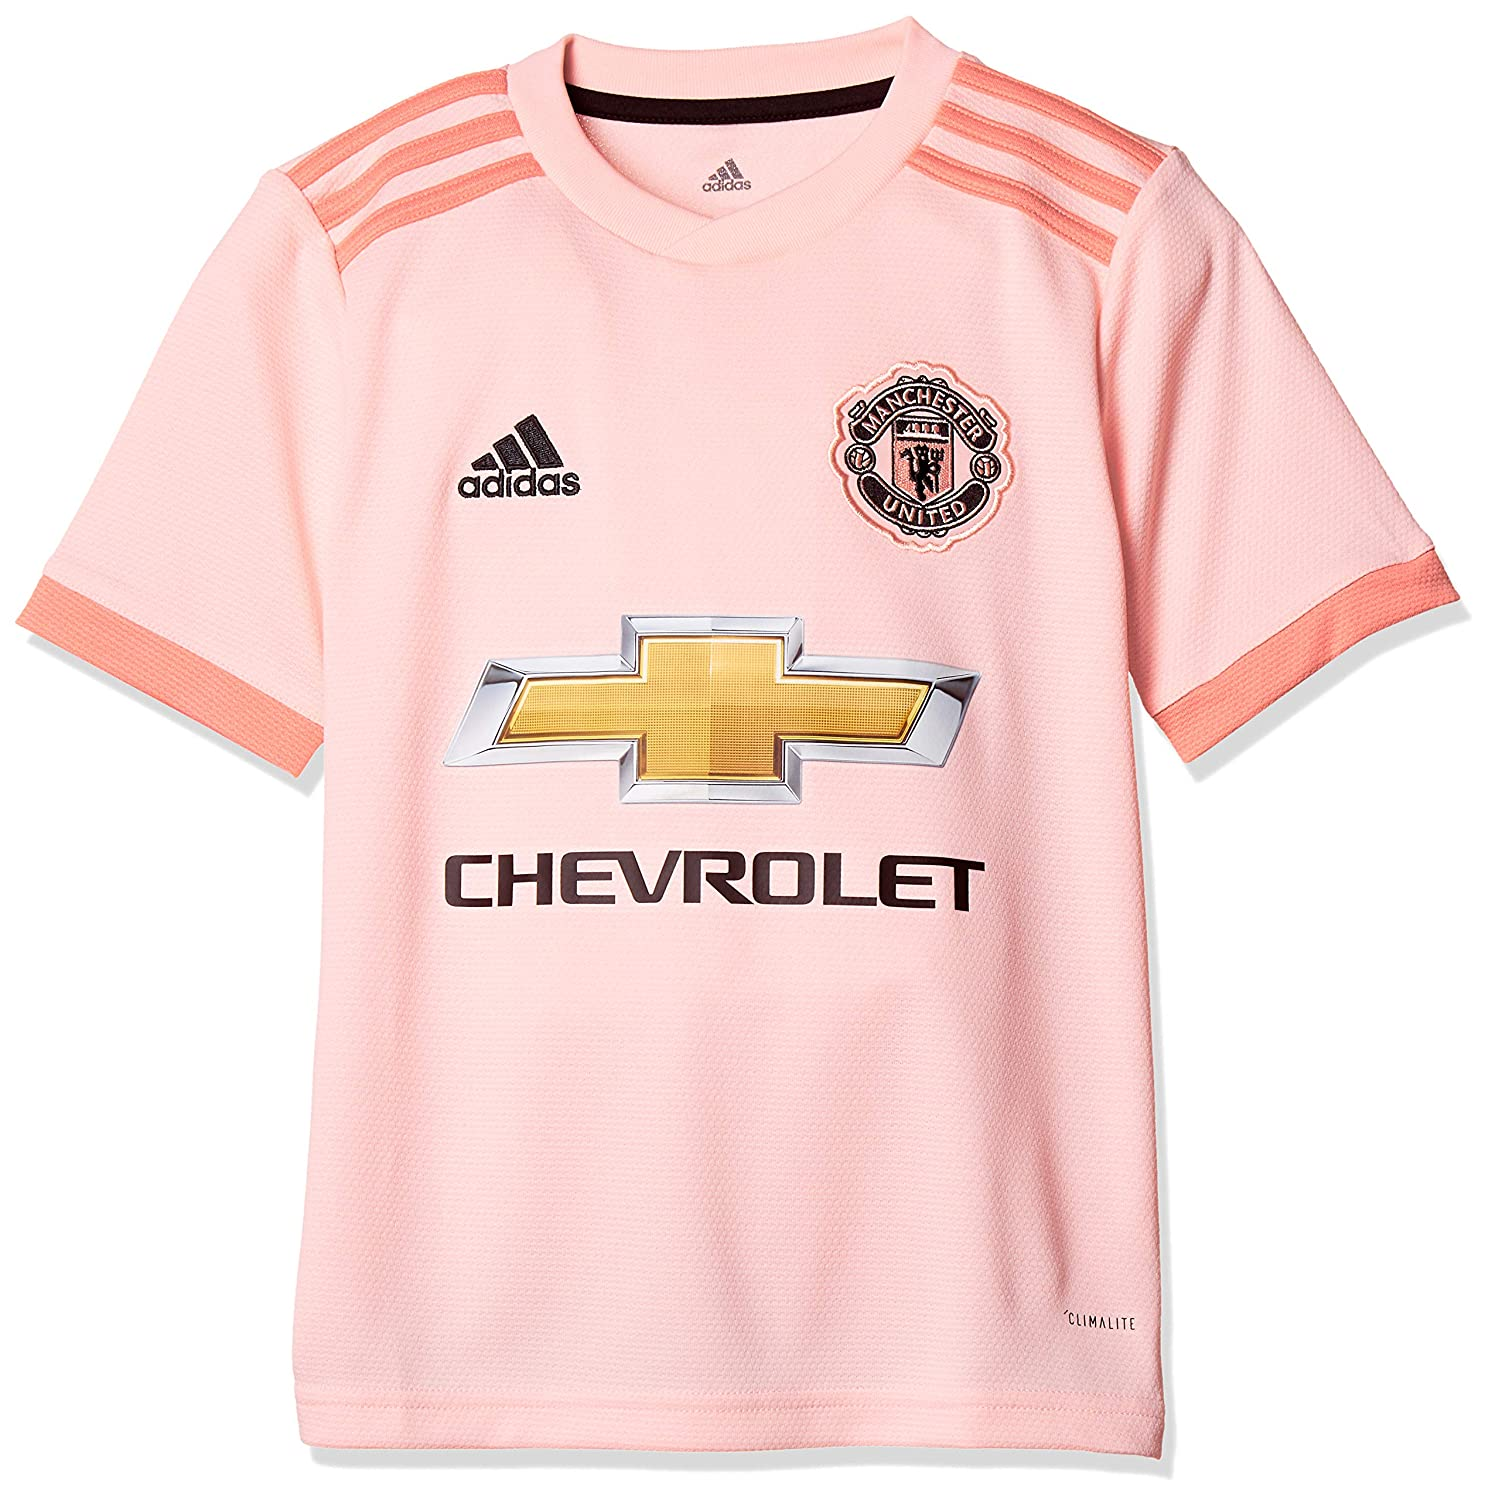 1fedc13a0 adidas Children's Manchester United Fc Away Authentic Short Sleeve Jersey:  Amazon.co.uk: Clothing